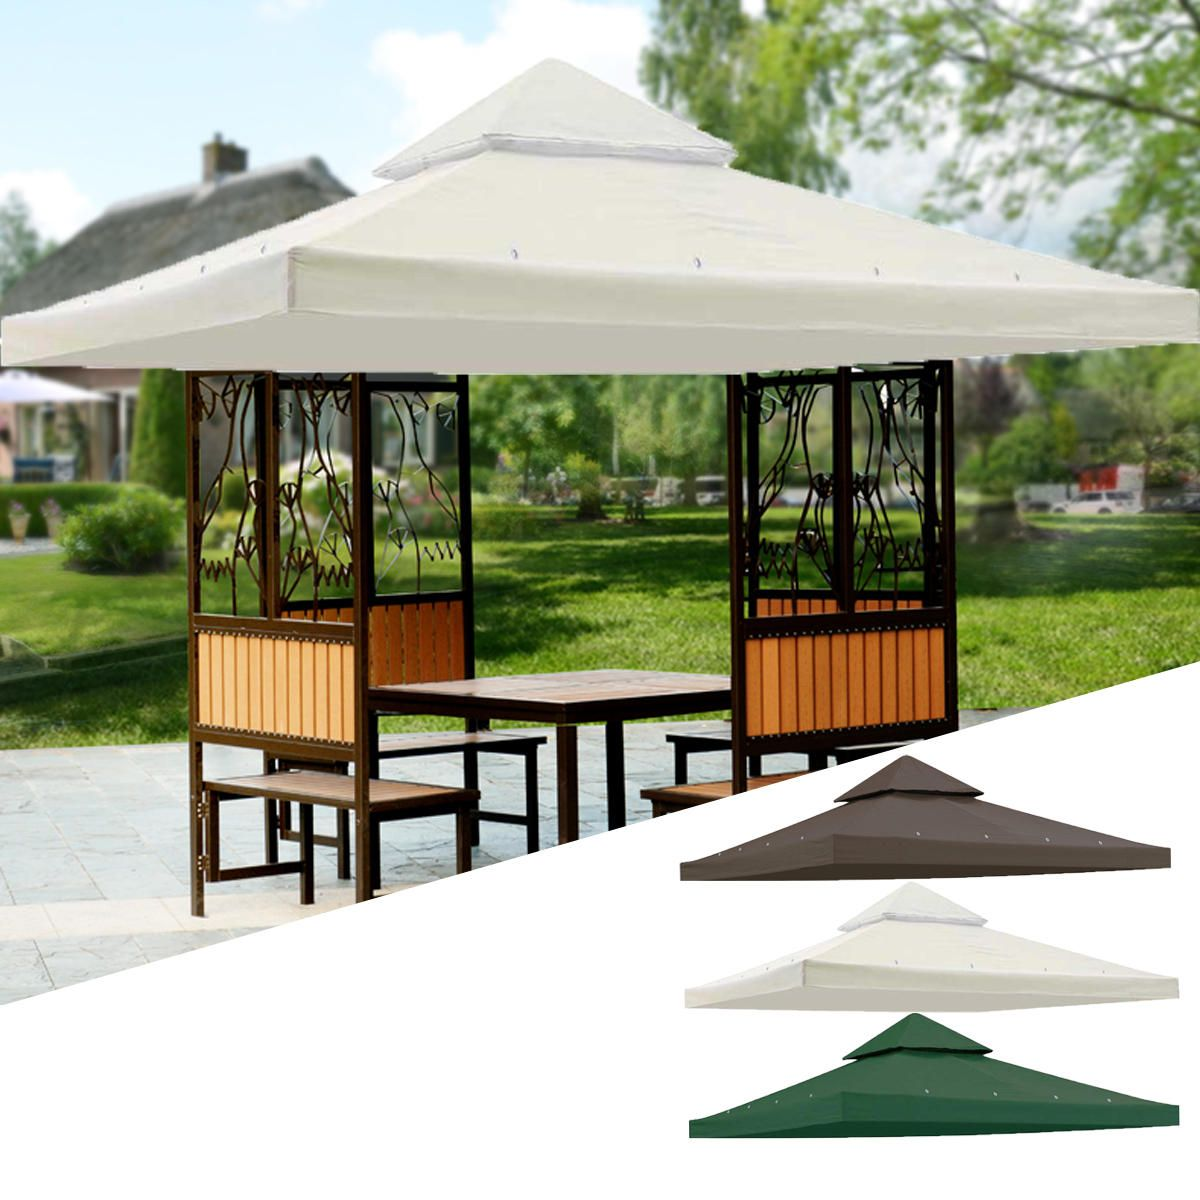 120x120inch Garden Pavilion Terrace Top Canopy Cover Garden Shade Gazebo Patio Tent Sunshade Accessories Replacement